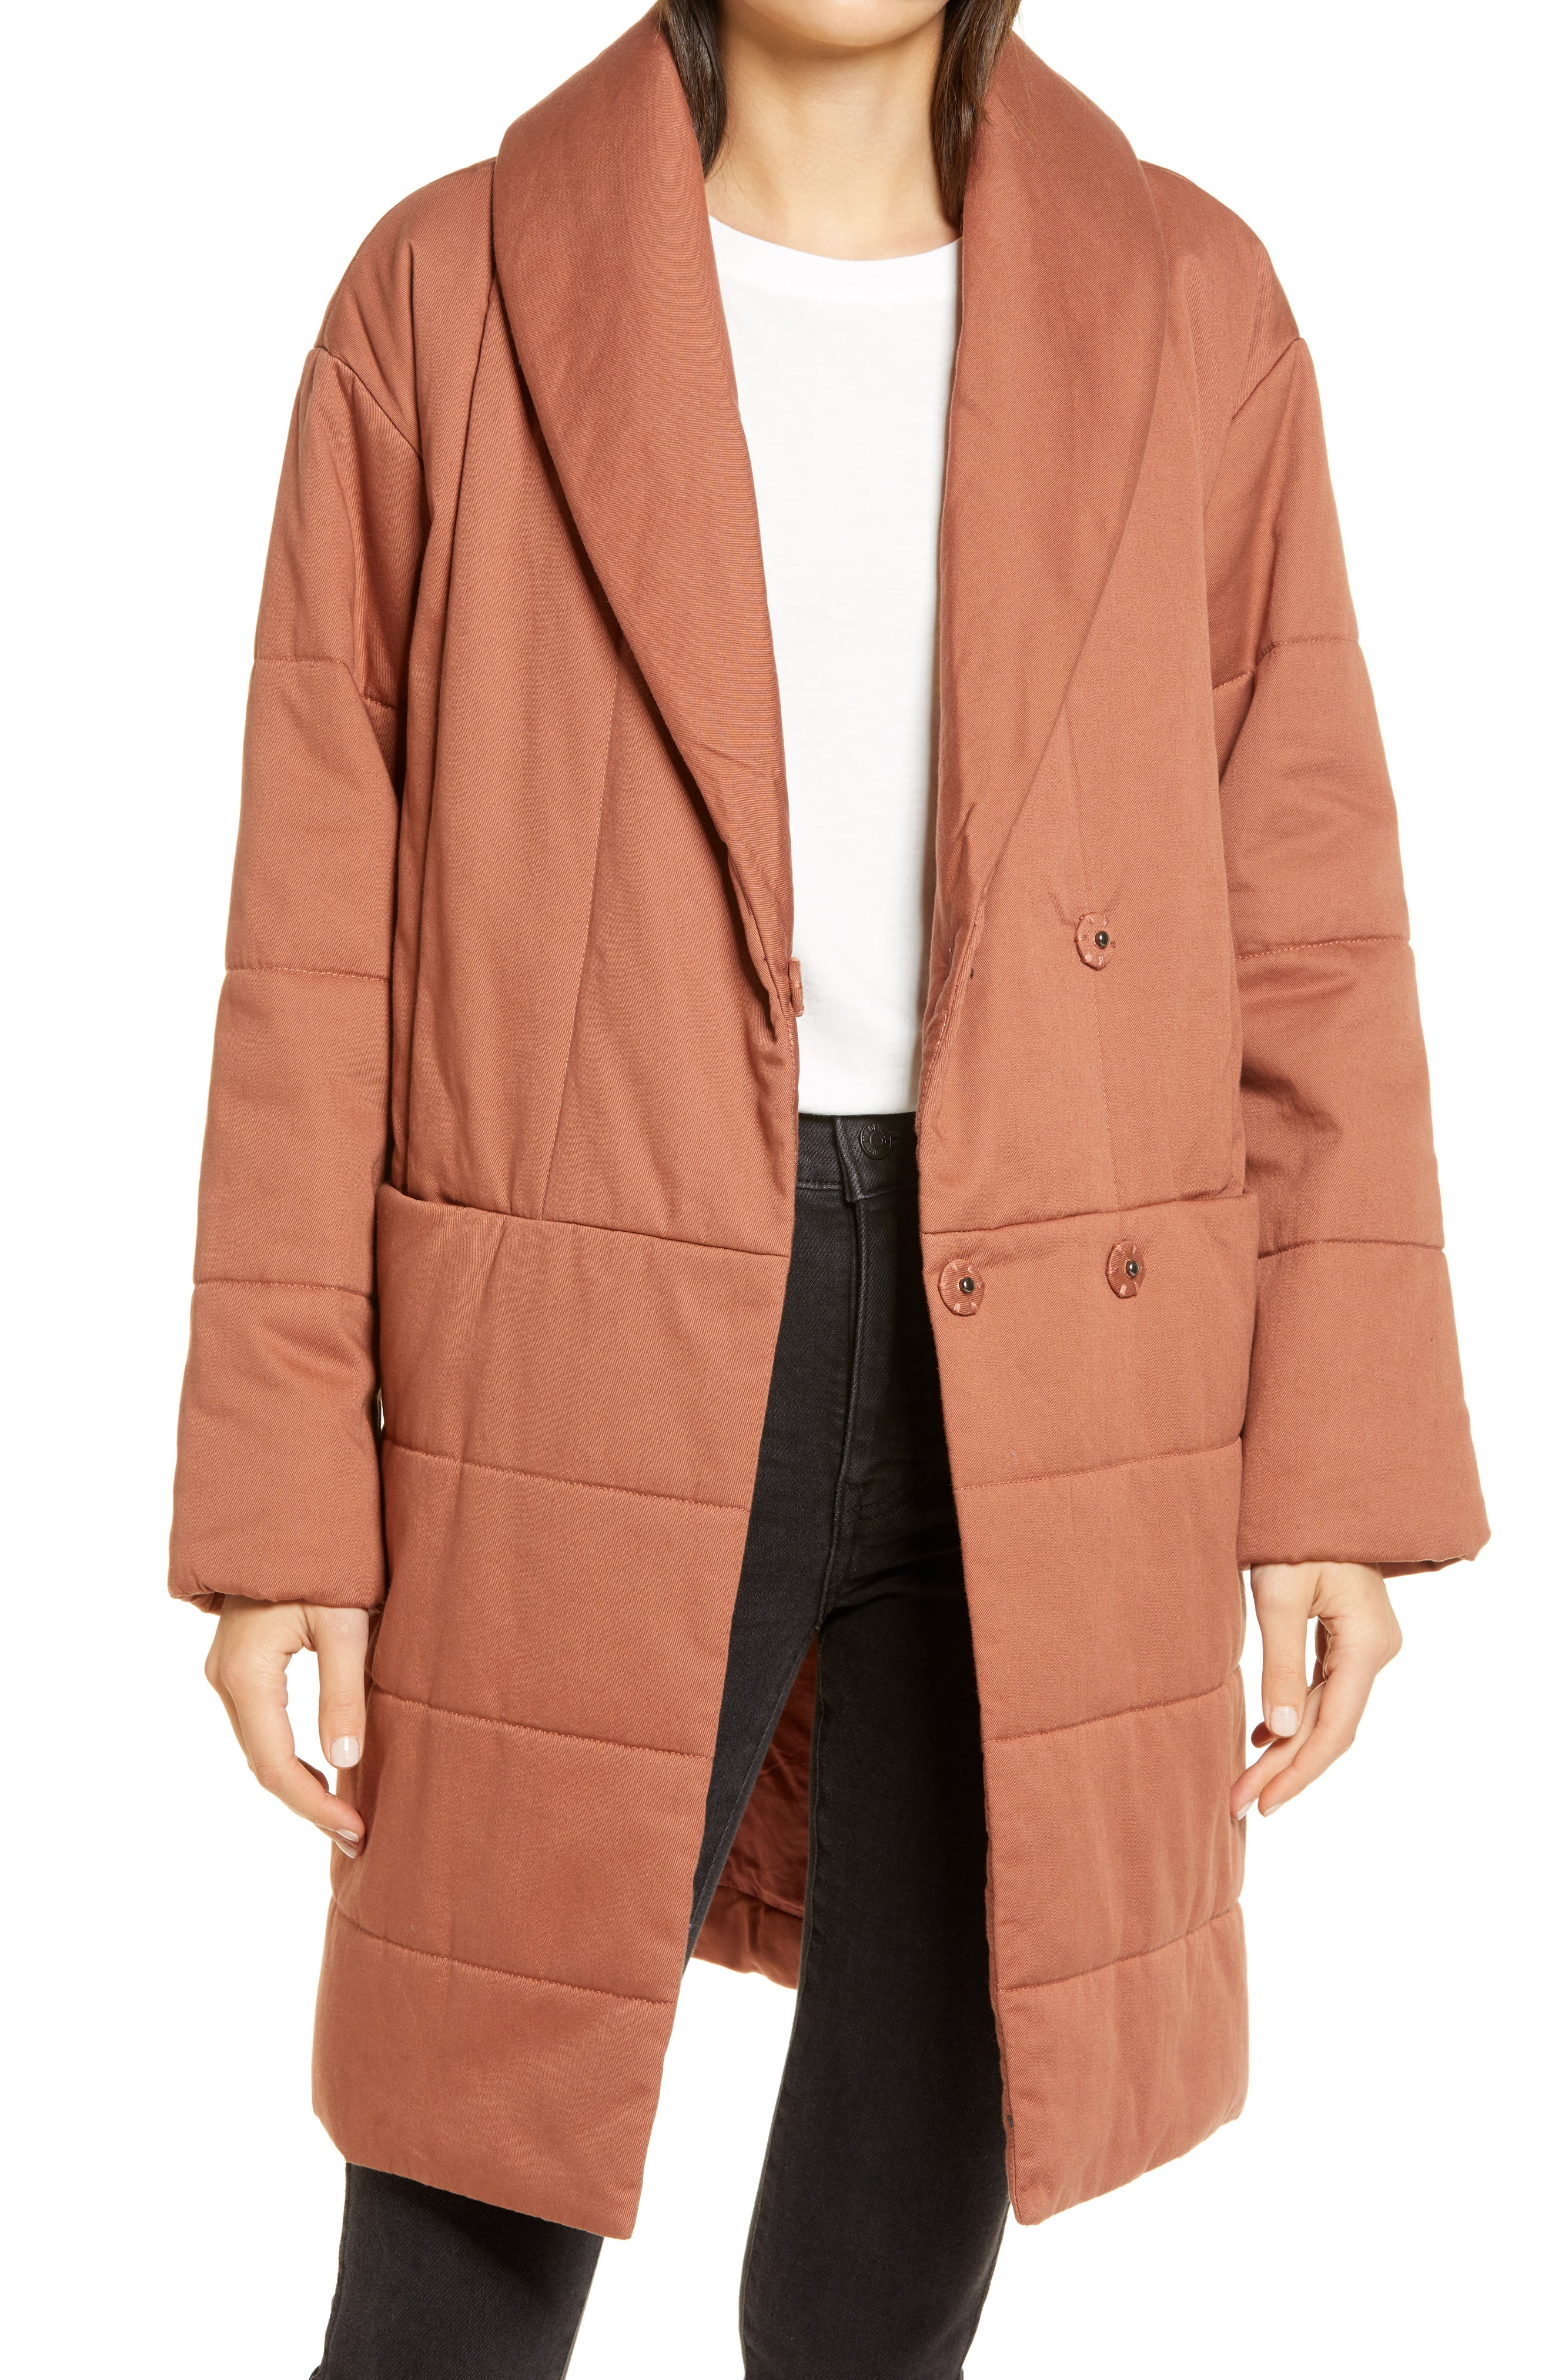 Cozy and quilted, this wrap coat is padded with eco-friendly PrimaLoft insulation, a warm-as-down alternative made of 100% recycled content. One jacket = five plastic bottles. Style Name: Madewell Dumont Quilted Coat. Style Number: 6120108. Available in stores.